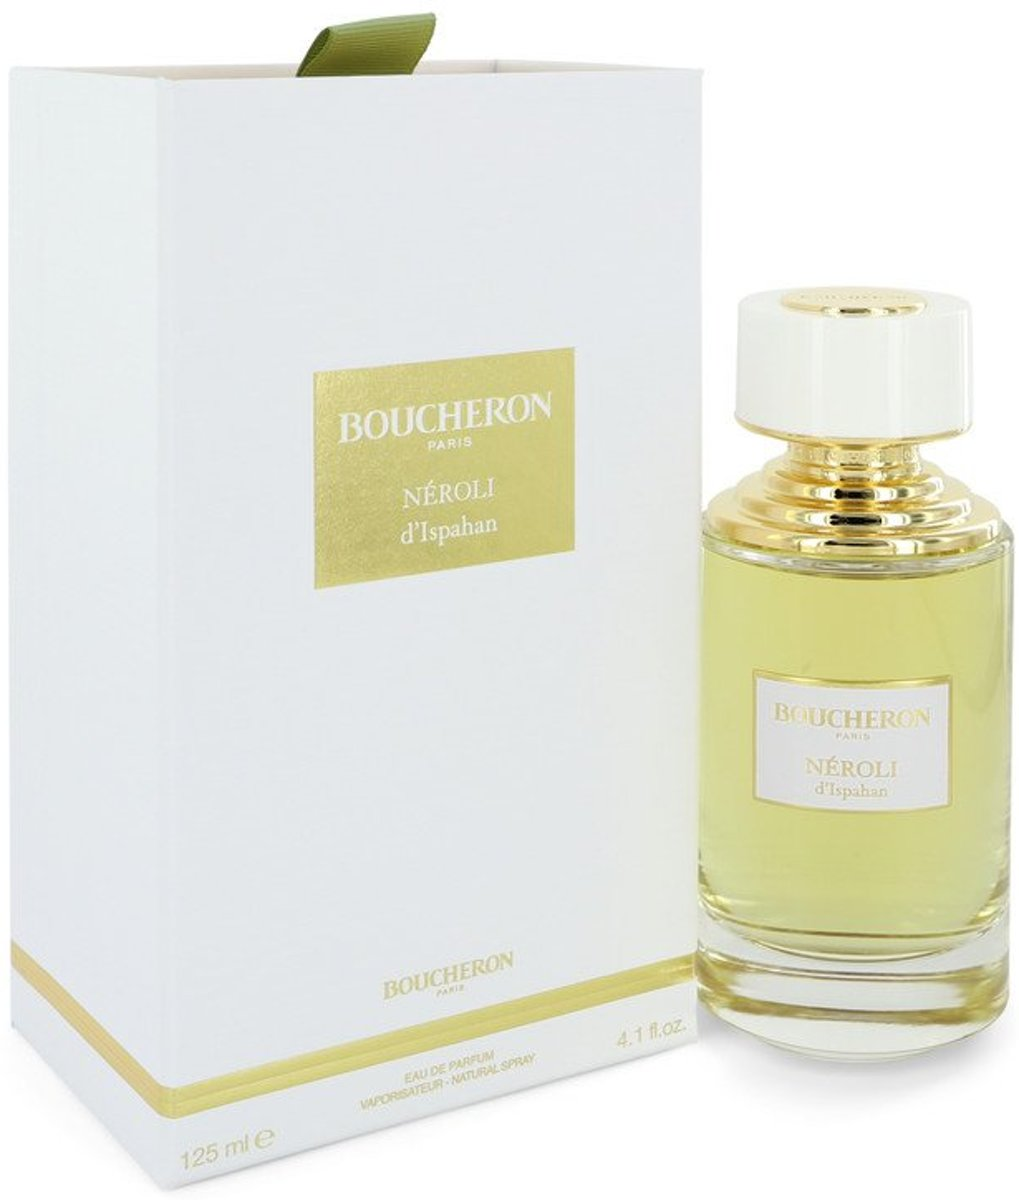 Boucheron Neroli Dispahan - Eau de parfum spray - 125 ml